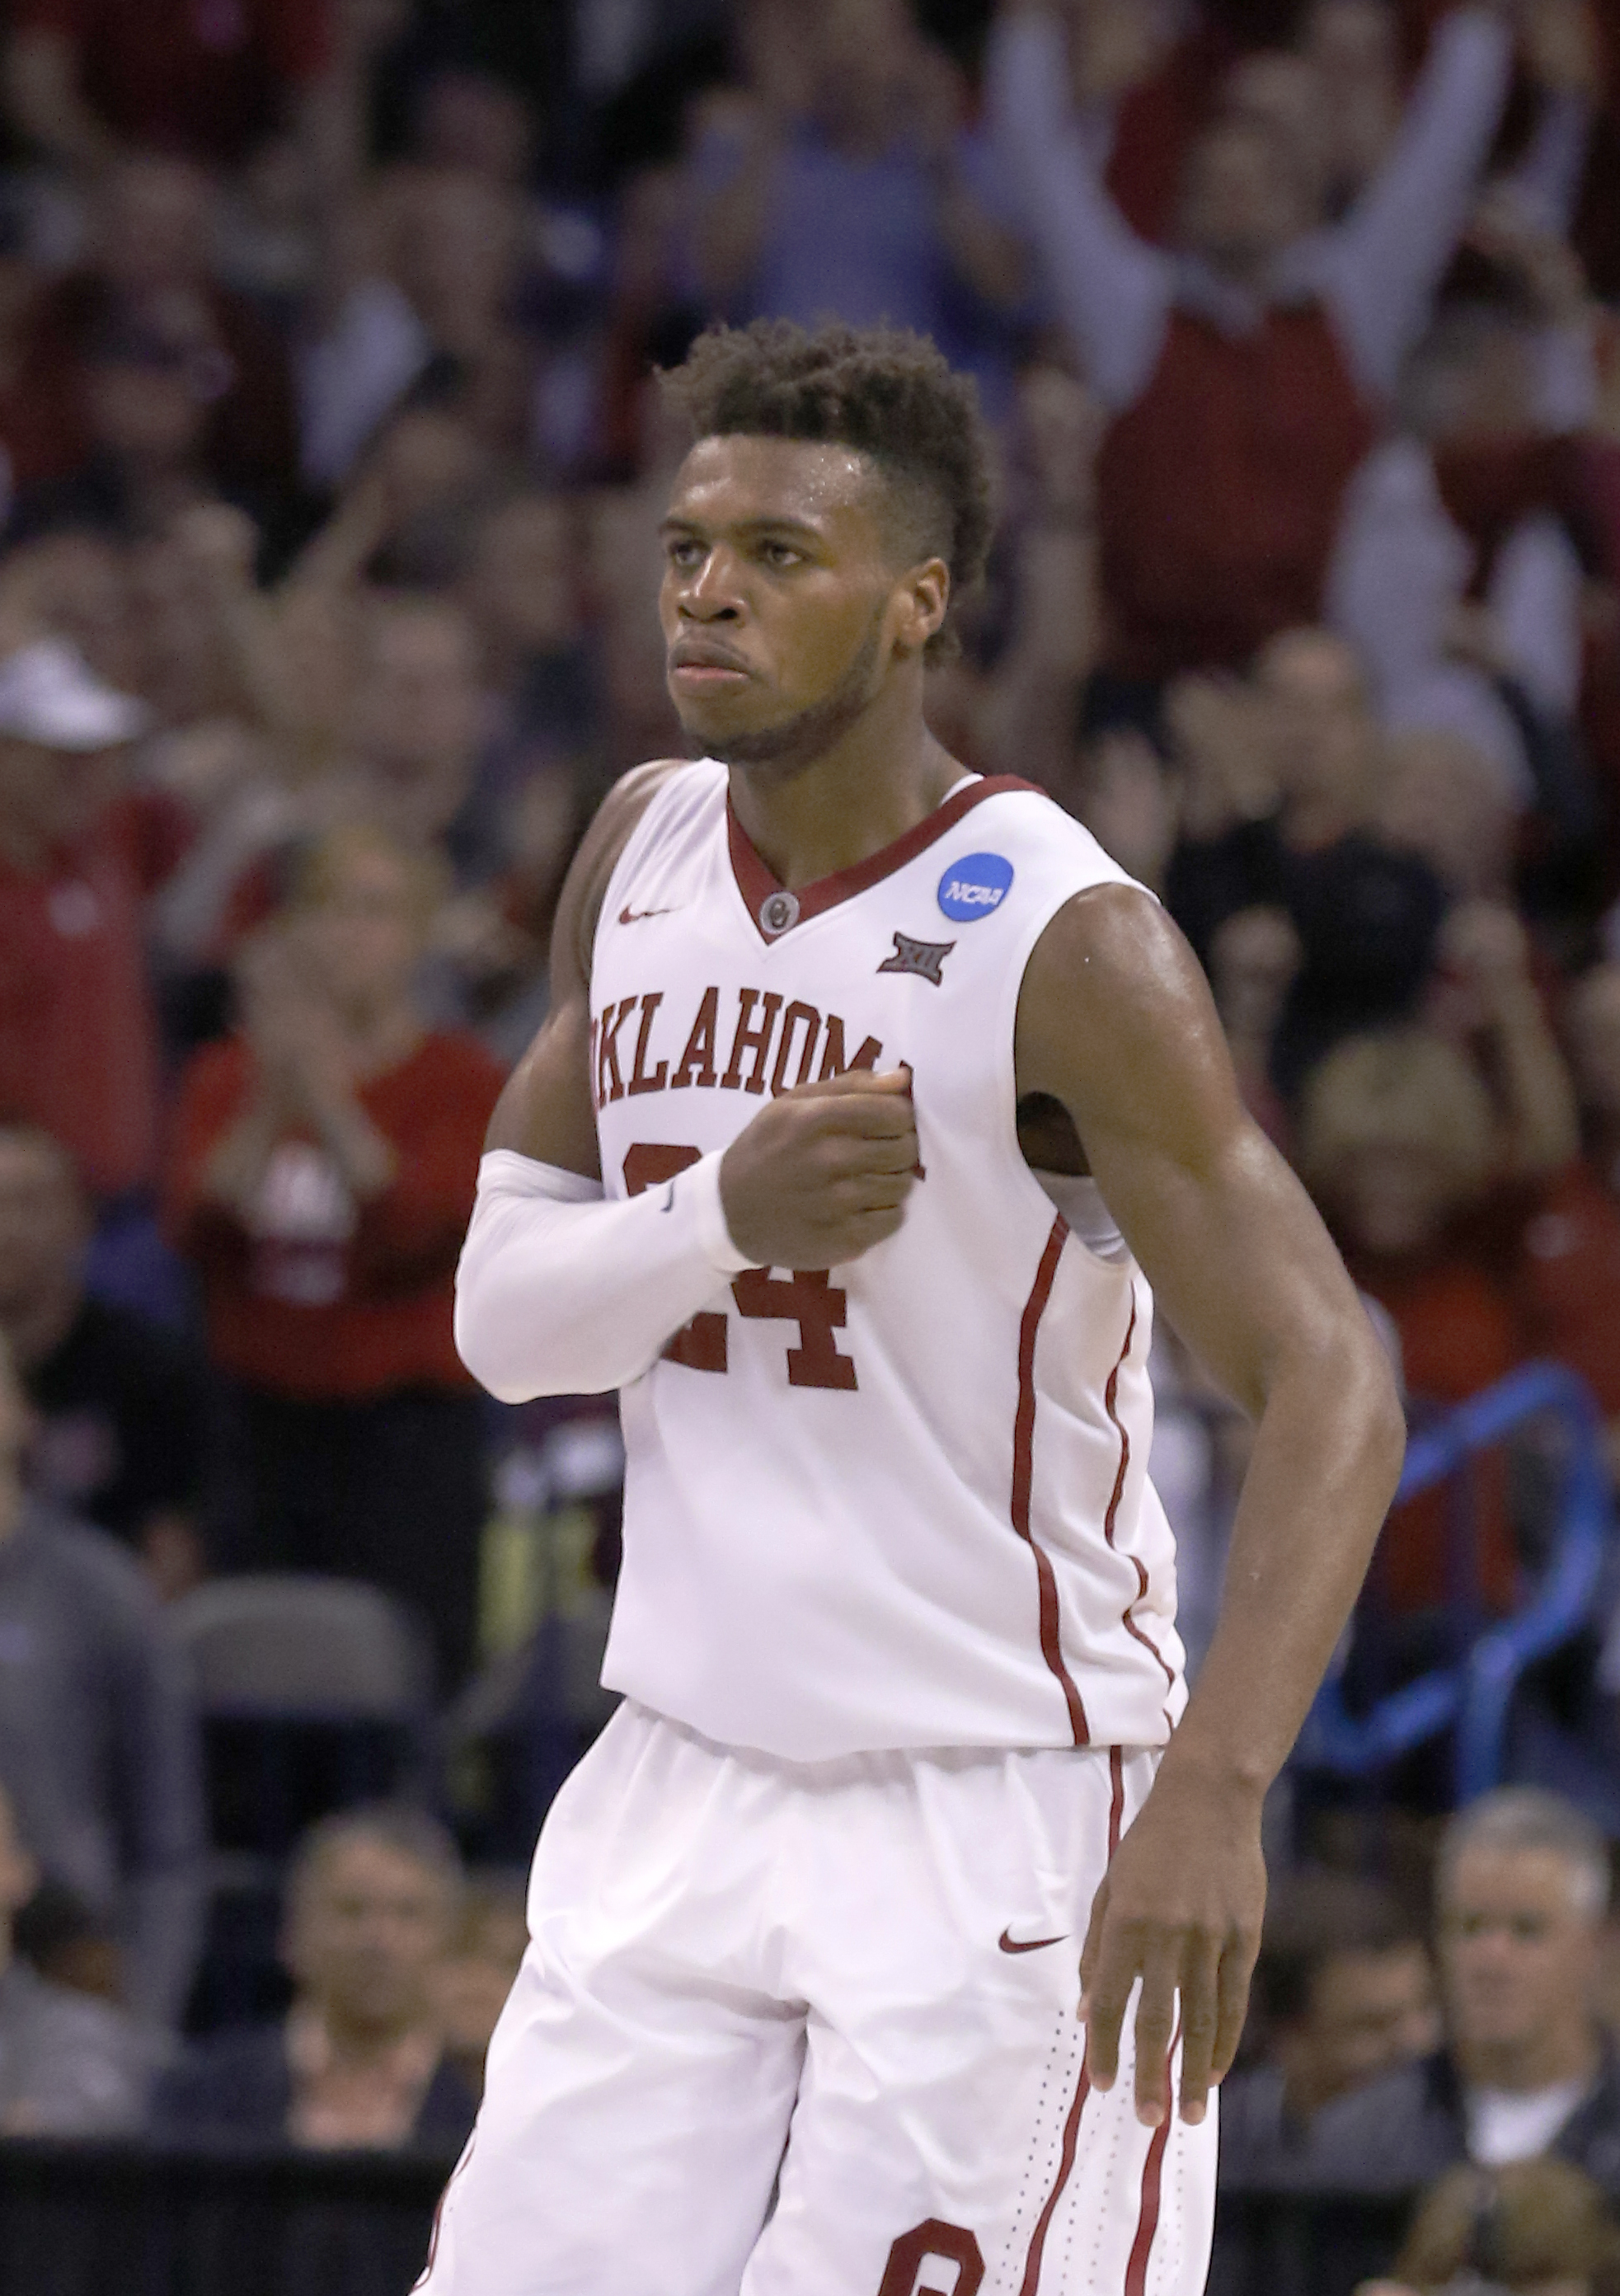 Oklahoma guard Buddy Hield (24) reacts after making a 3-point basket during the second half against Cal State Bakersfield during a first-round men's college basketball game in the NCAA Tournament in Oklahoma City, Friday, March 18, 2016. Oklahoma won 82-6